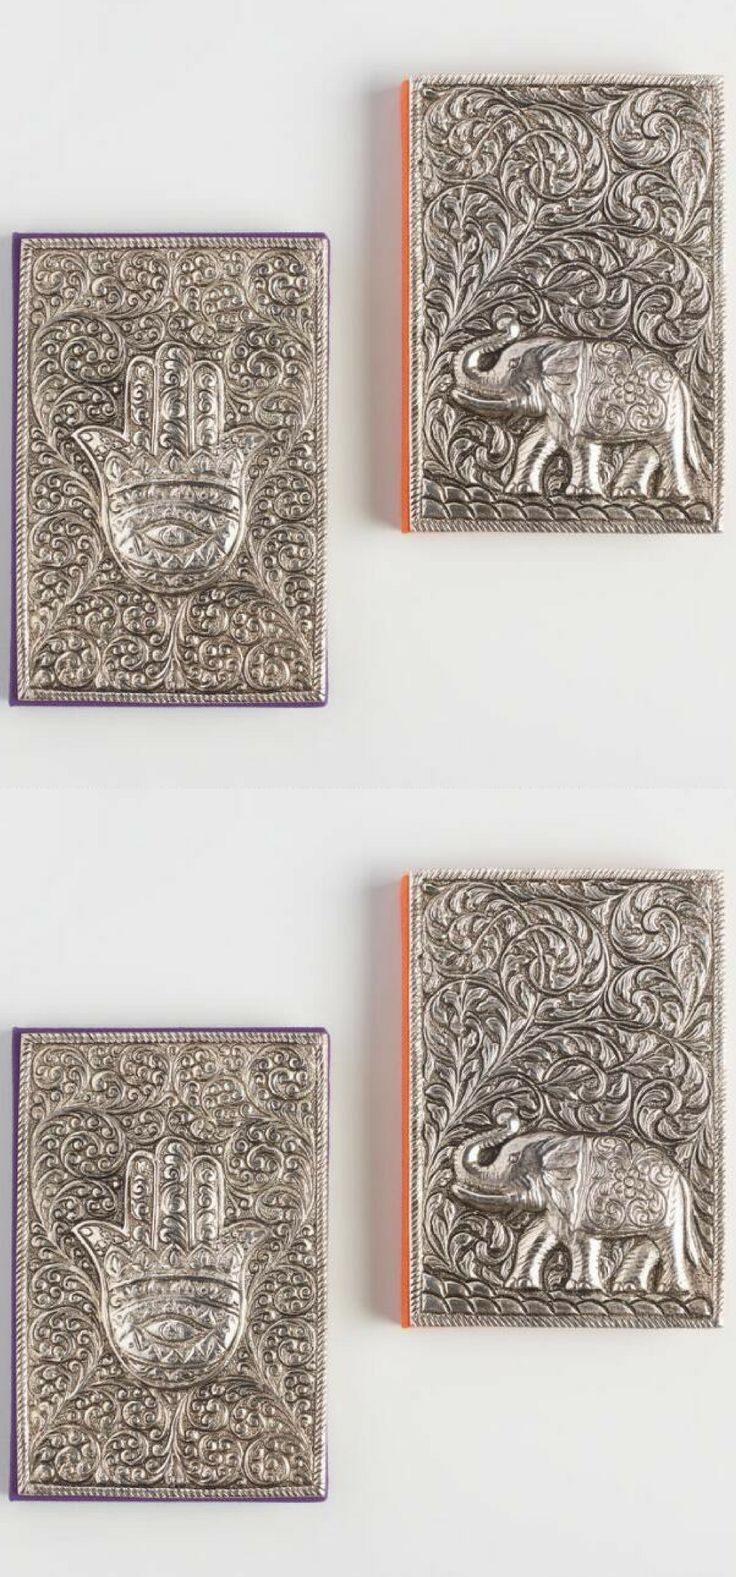 i love these handcrafted embossed  metal covers depicting an elephant and hamsa symbol, which are meant to  inspire happiness, luck and wisdom. They are perfect for people who love to write or are serious about journaling!!!! #shopping #love #bulletjournaling #ad #giftideas #giftsforher #giftsforhim #holidaygifts